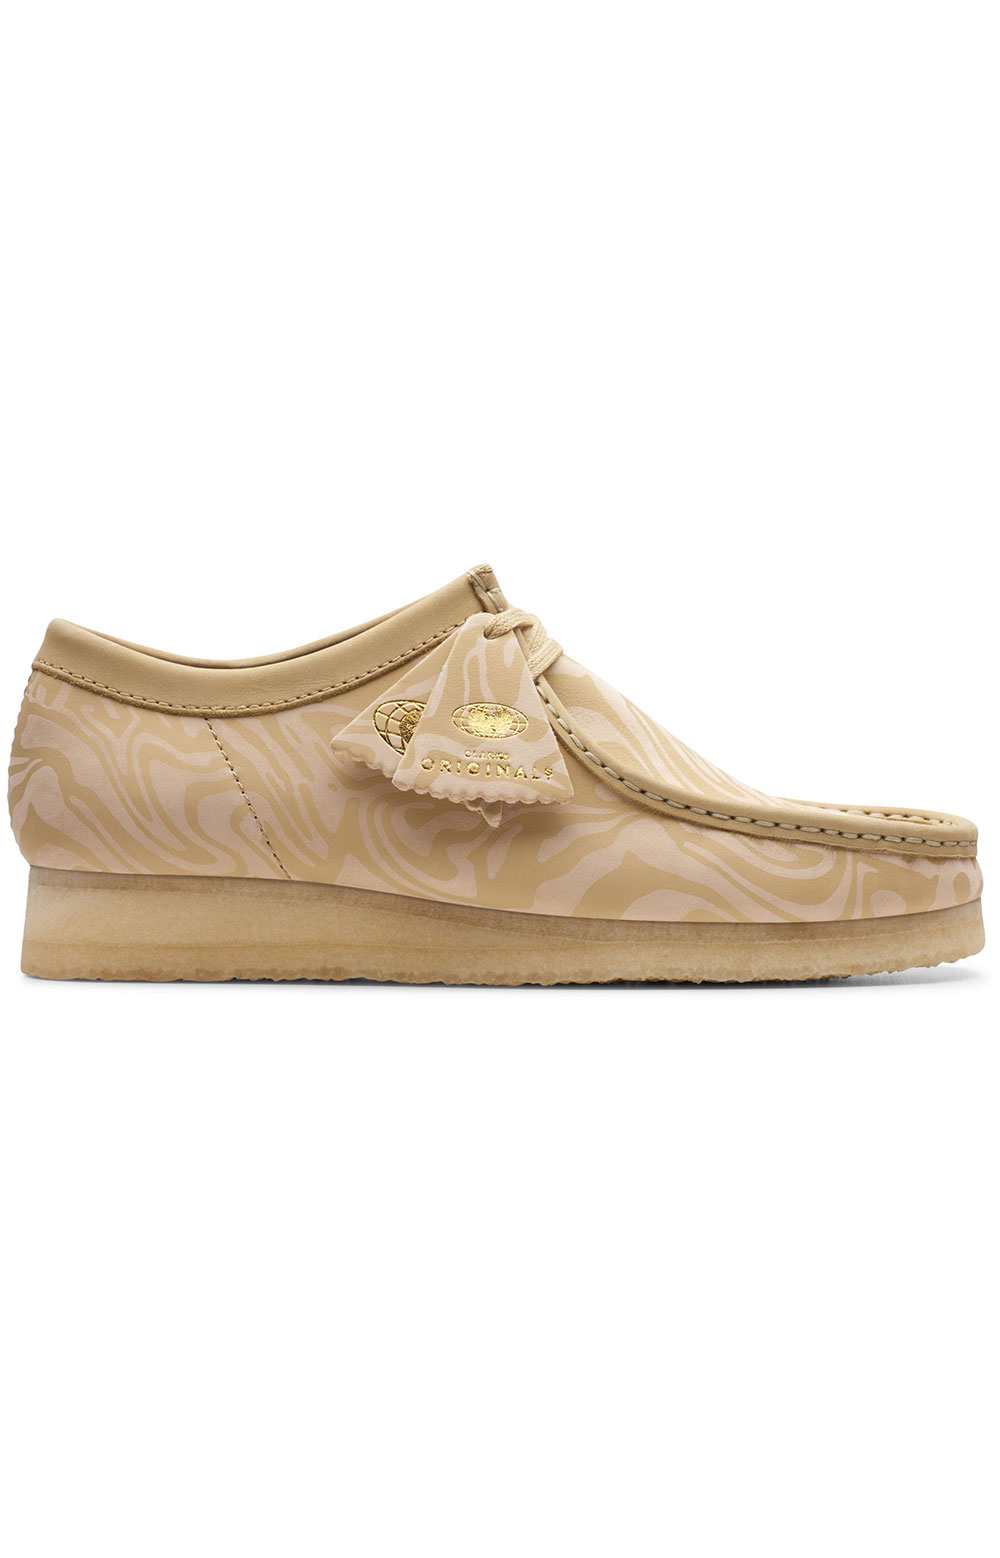 (6147058) Wallabee WW Lo Shoe - Maple